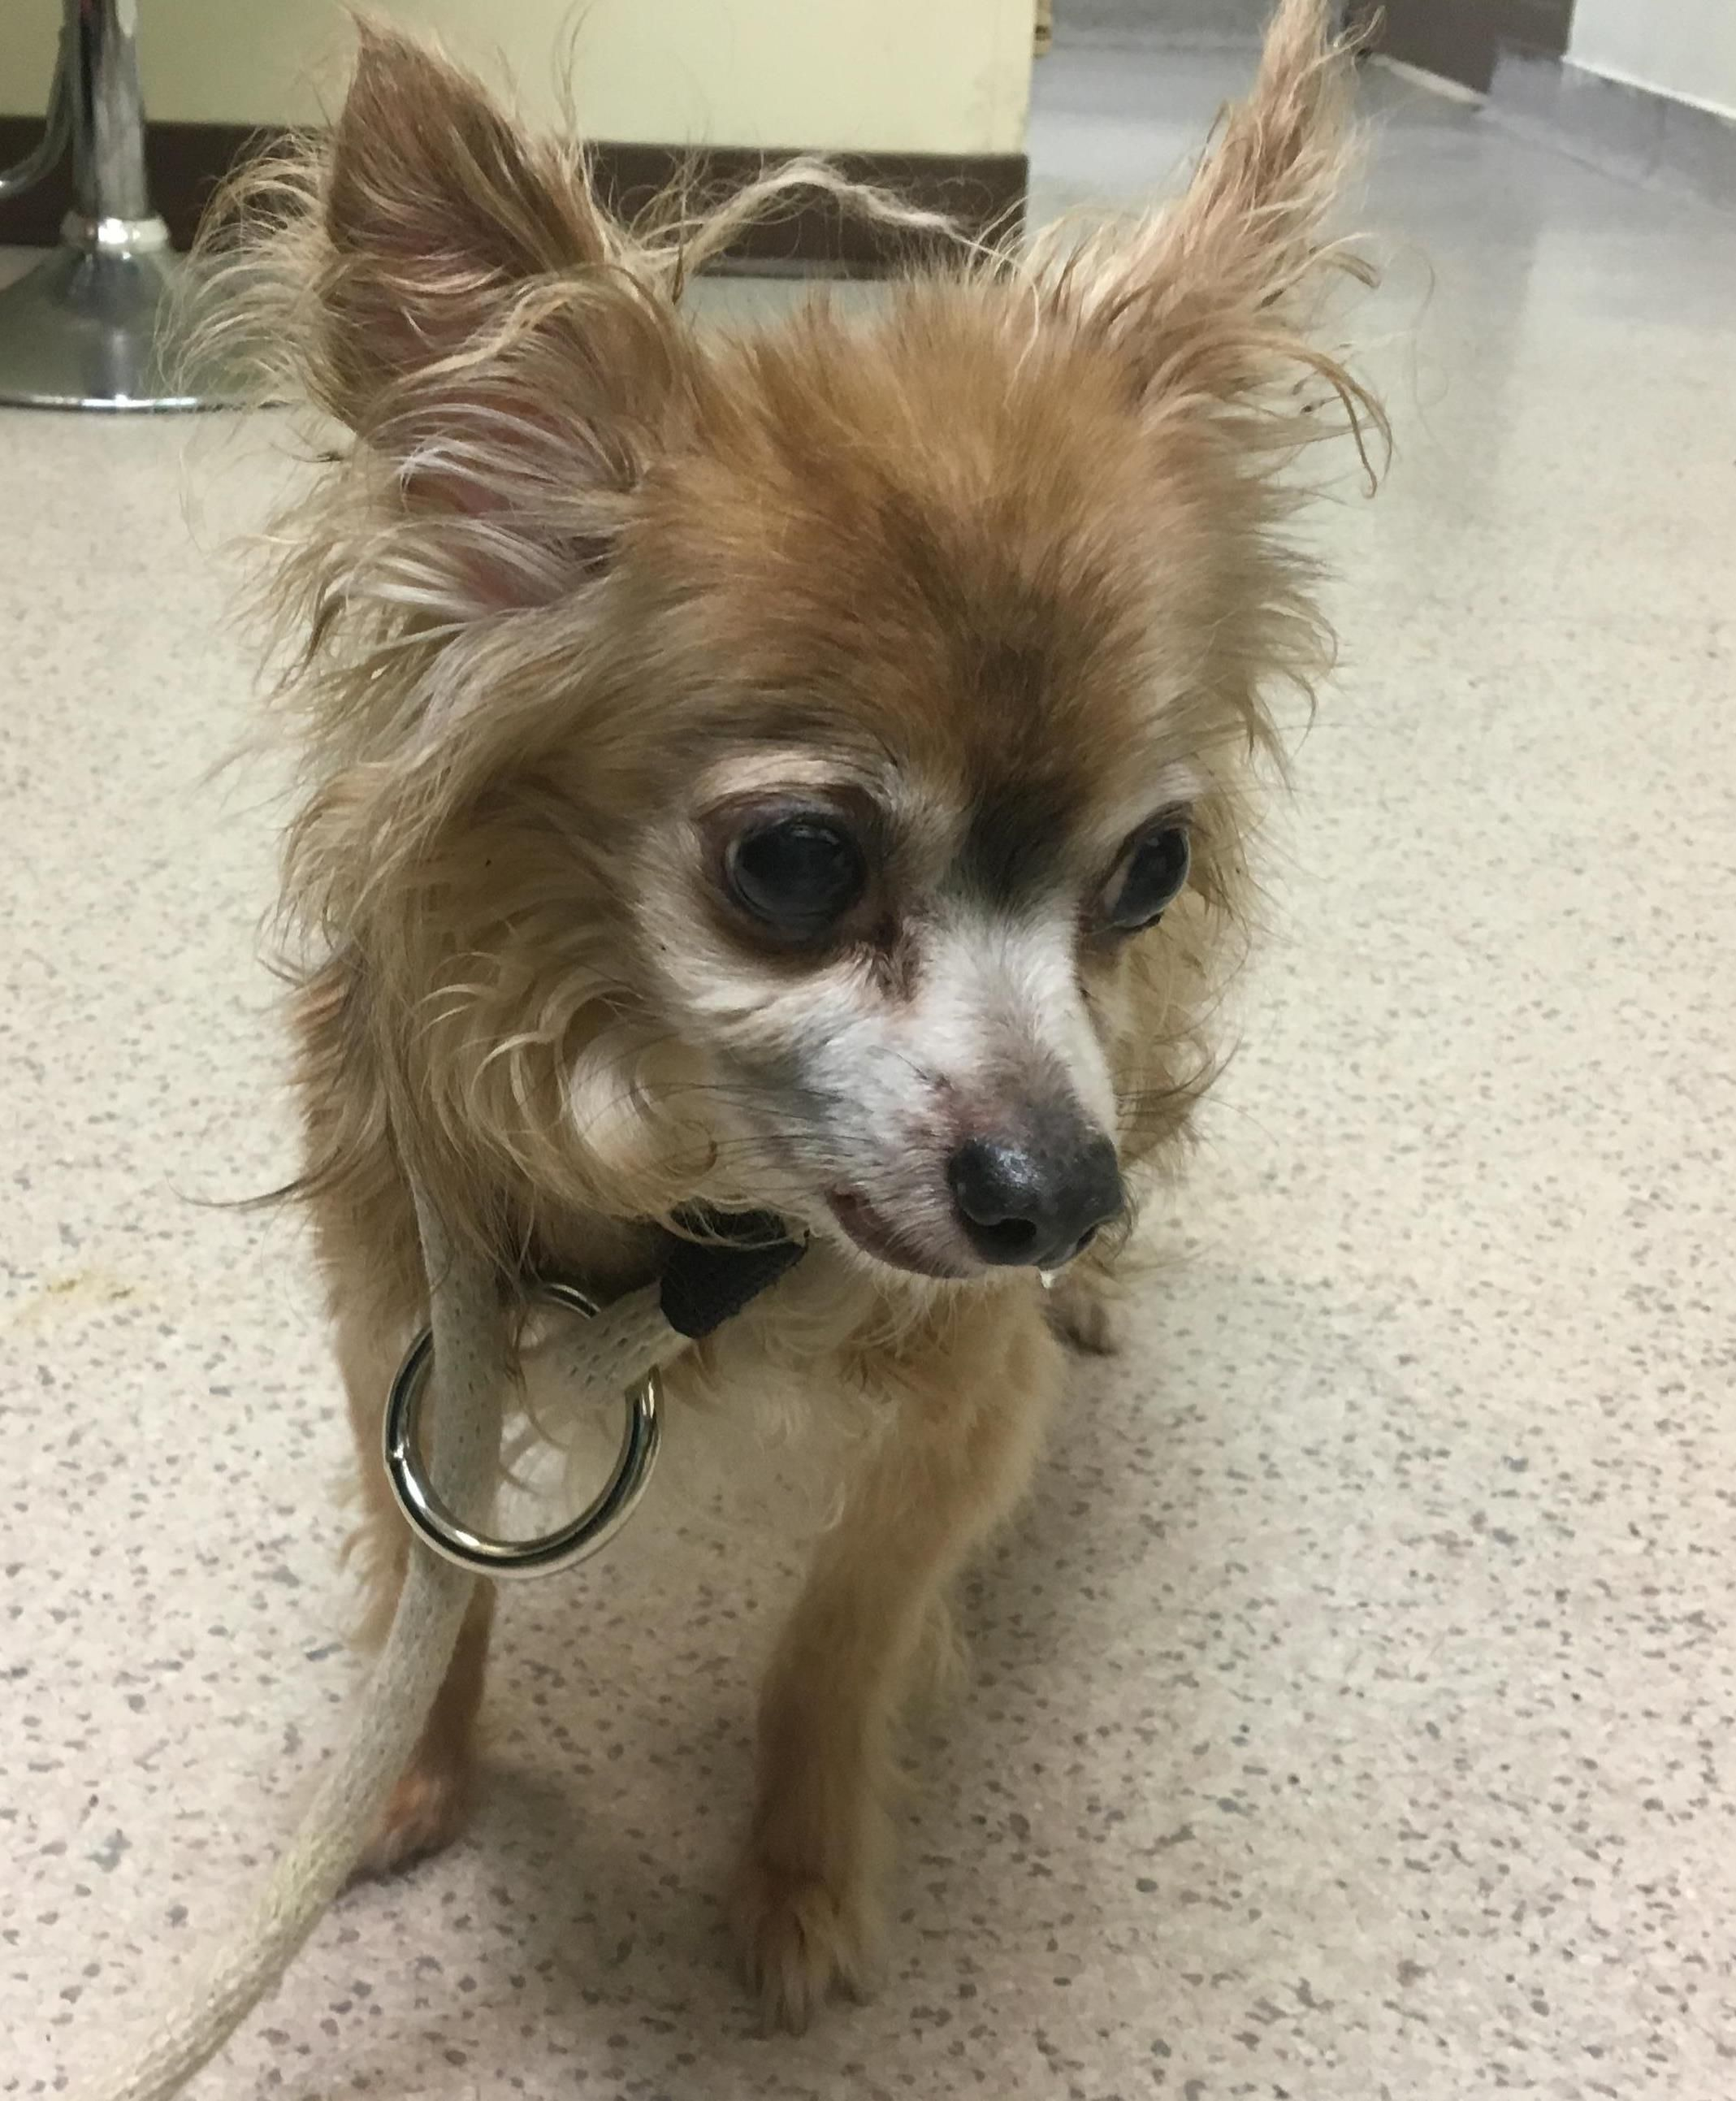 Gigantor Id 41021 Chihuahua Male 10yrs Old At Manhattan Acc Dog Photography Pet Care Animals